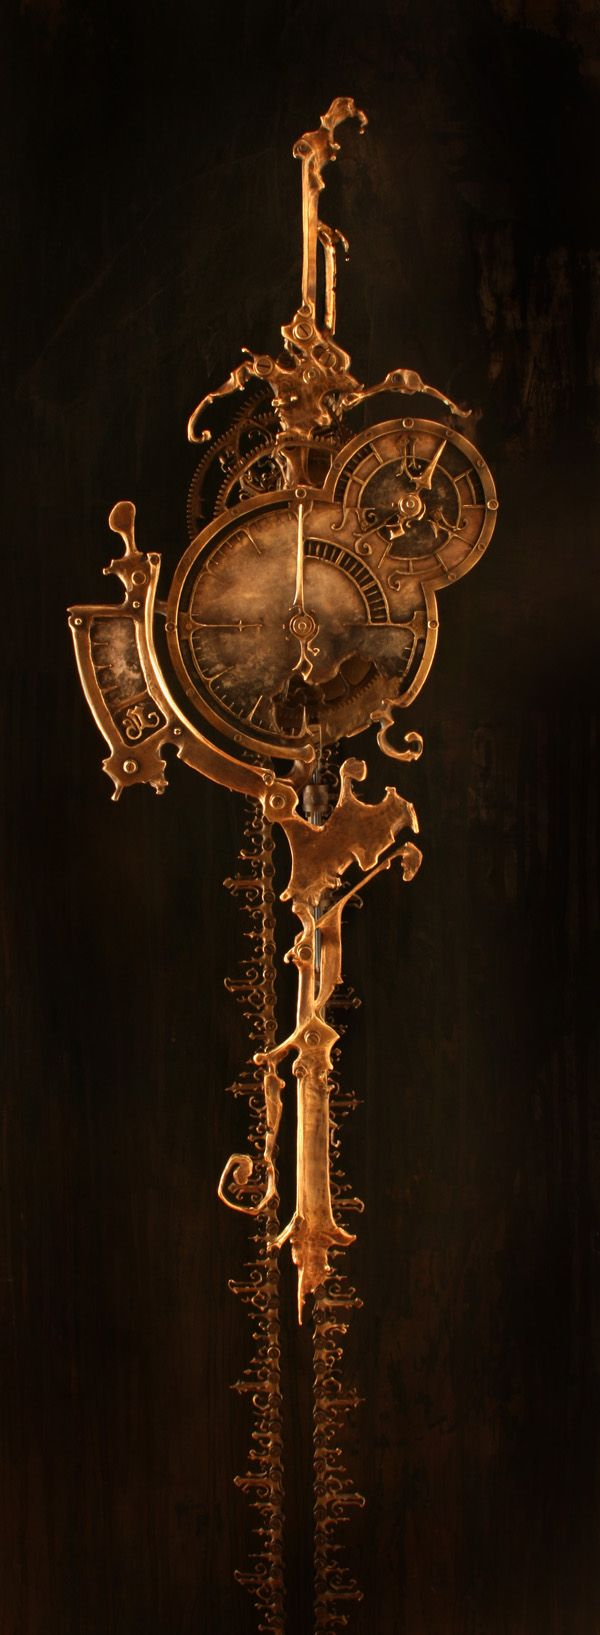 'Only the chain remains' - amazing clock by ericfreitas